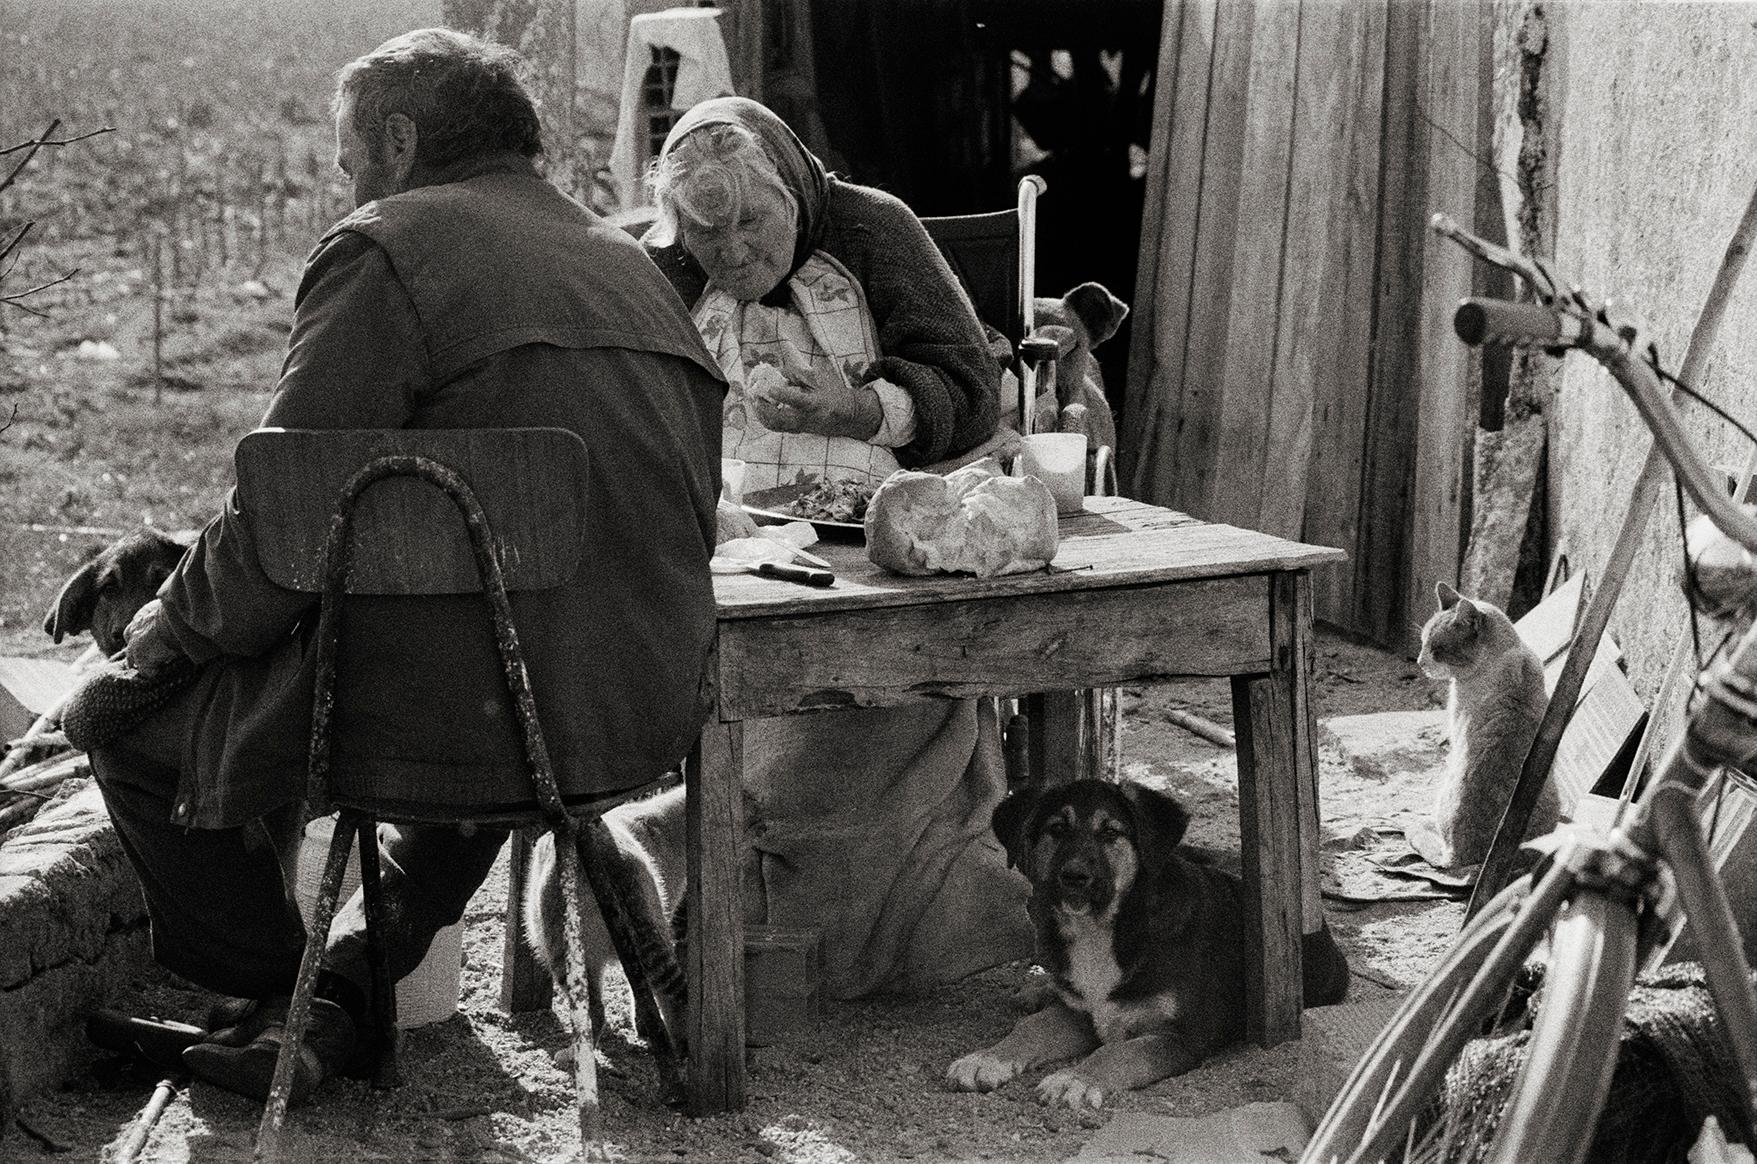 The Family - Portugal 2000 - Gelatin Silver Print - Signed